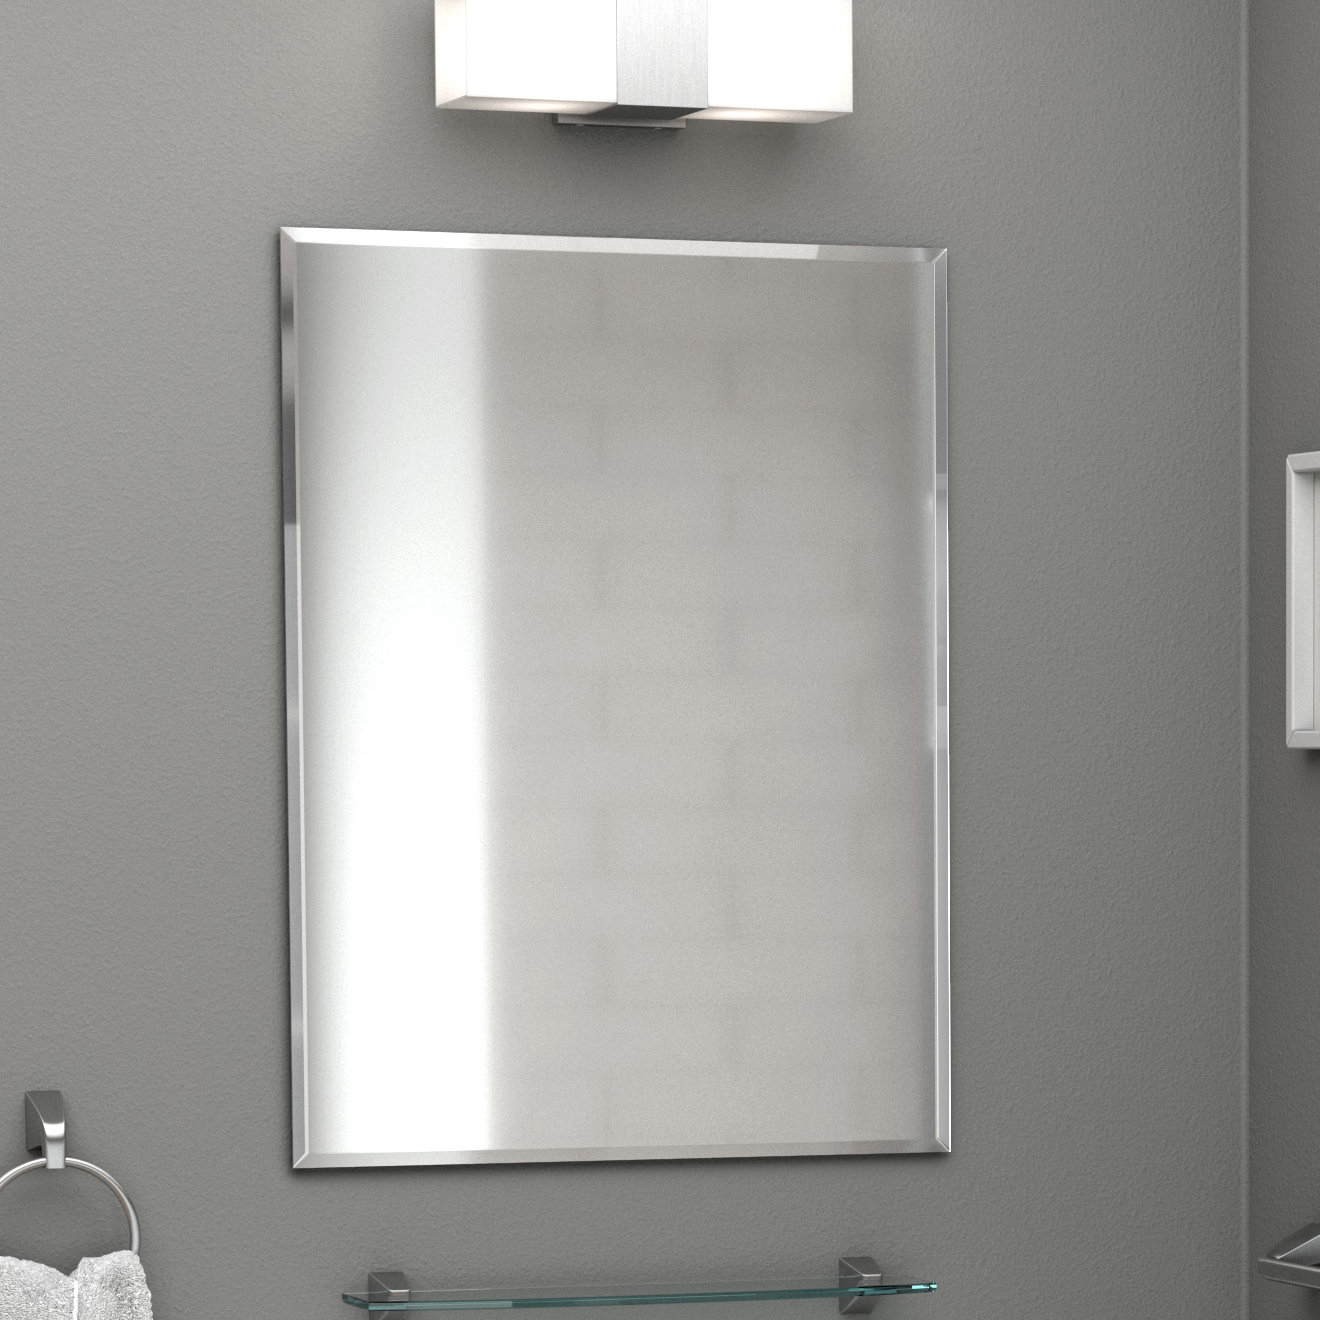 Most Recent Rectangle Flush Accent Wall Mirror Pertaining To Rectangle Accent Wall Mirrors (View 10 of 20)